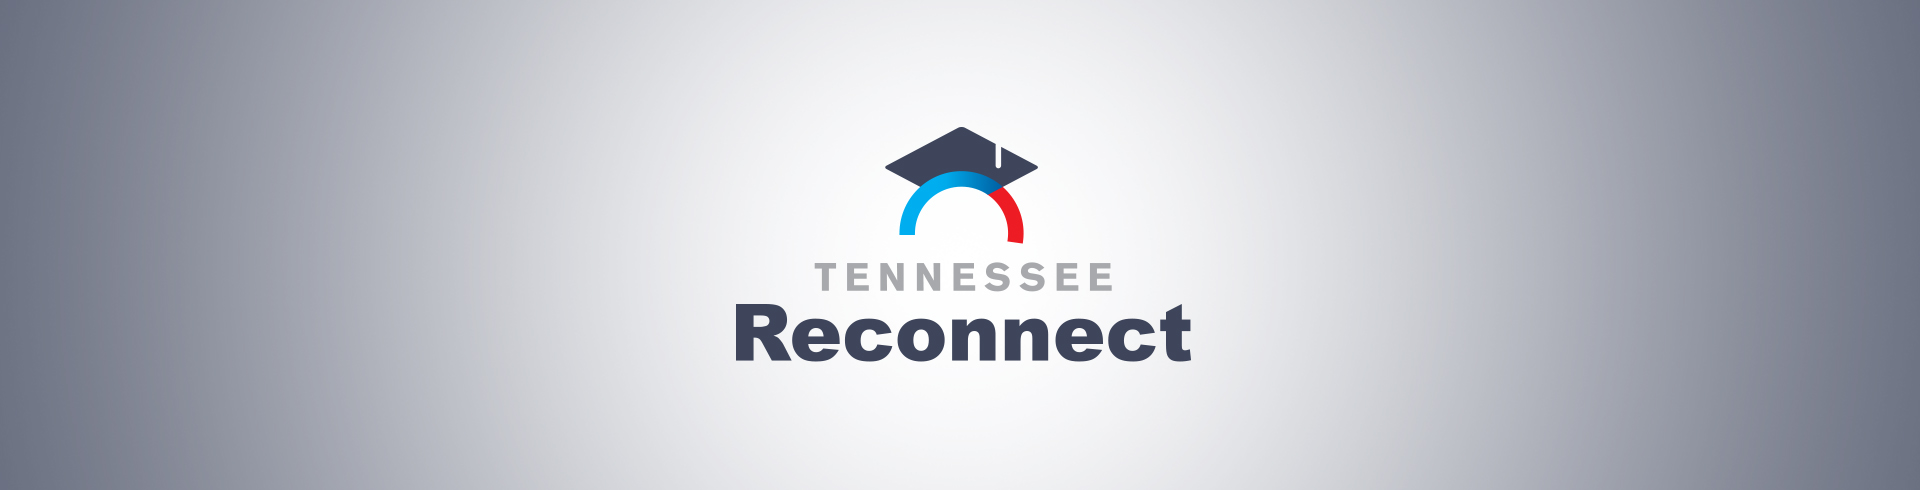 TN Reconnect banner